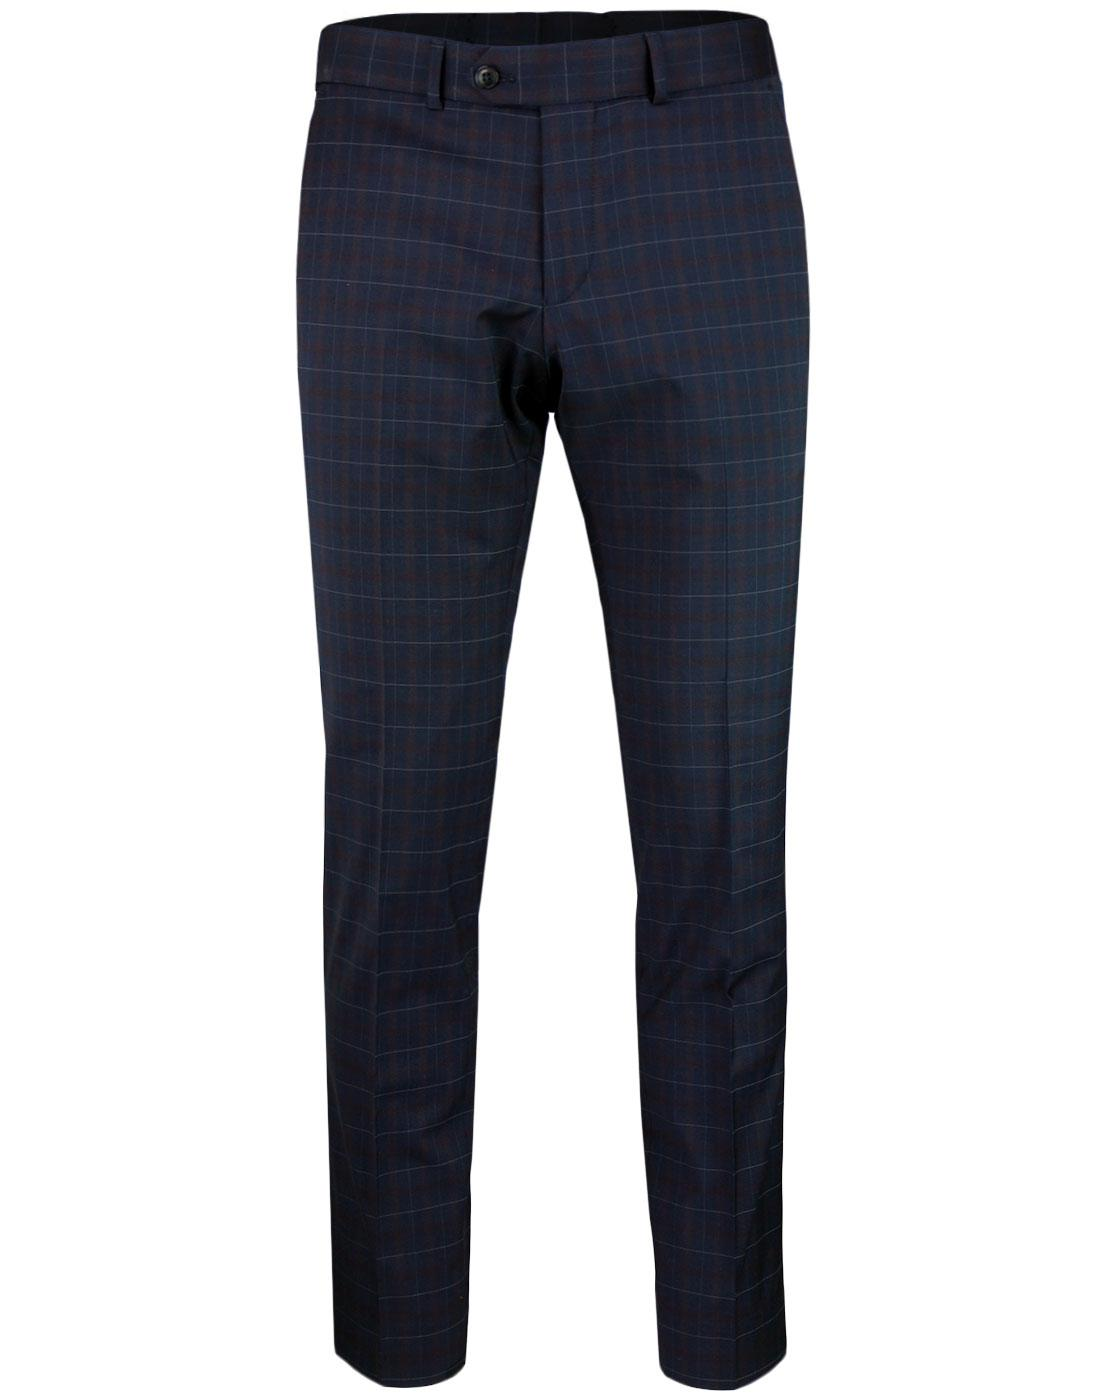 Marriott GIBSON LONDON Mod Tartan Suit Trousers